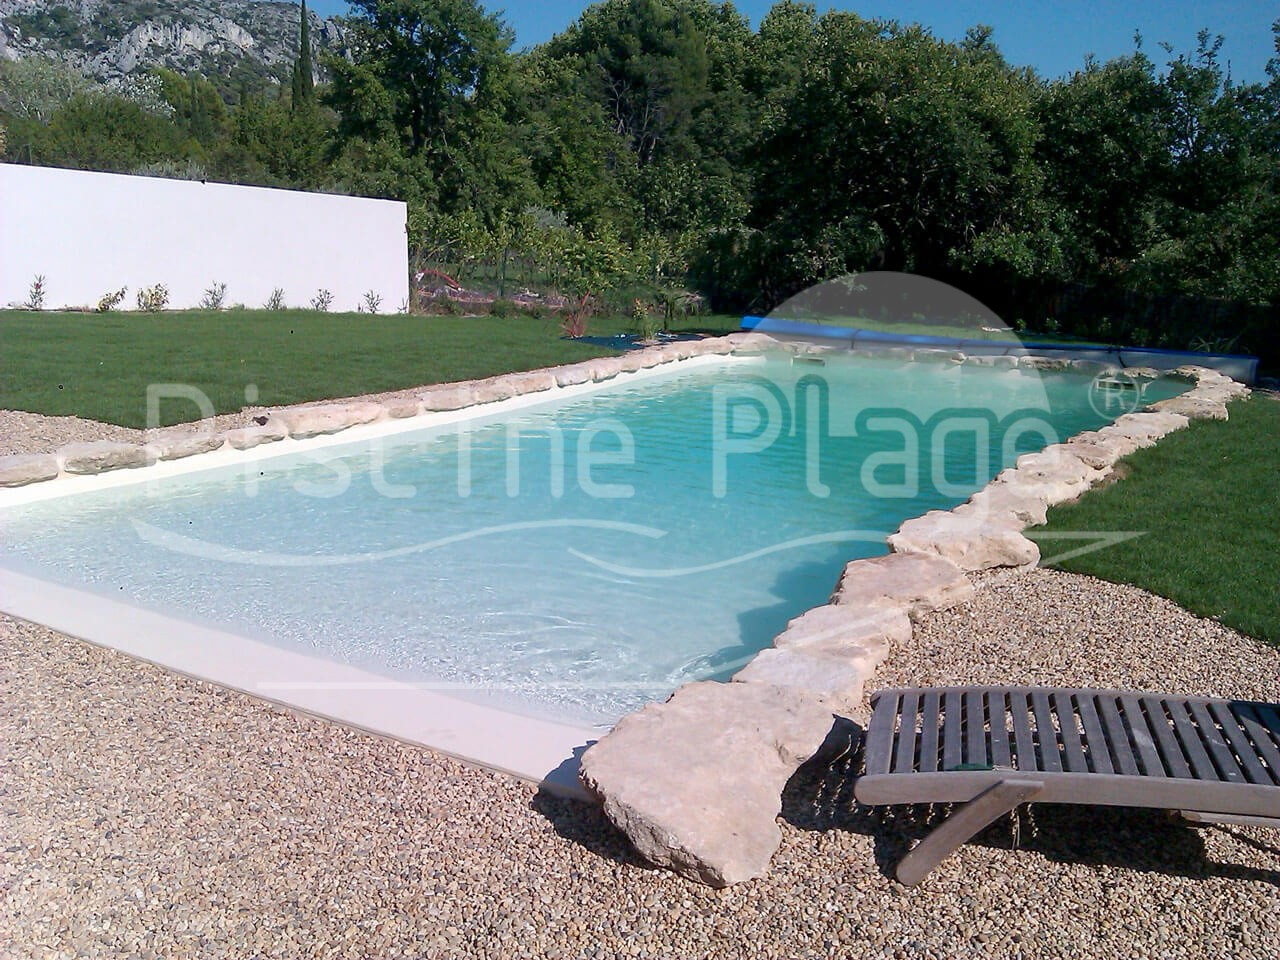 construction de piscine cavaillon piscine plage. Black Bedroom Furniture Sets. Home Design Ideas